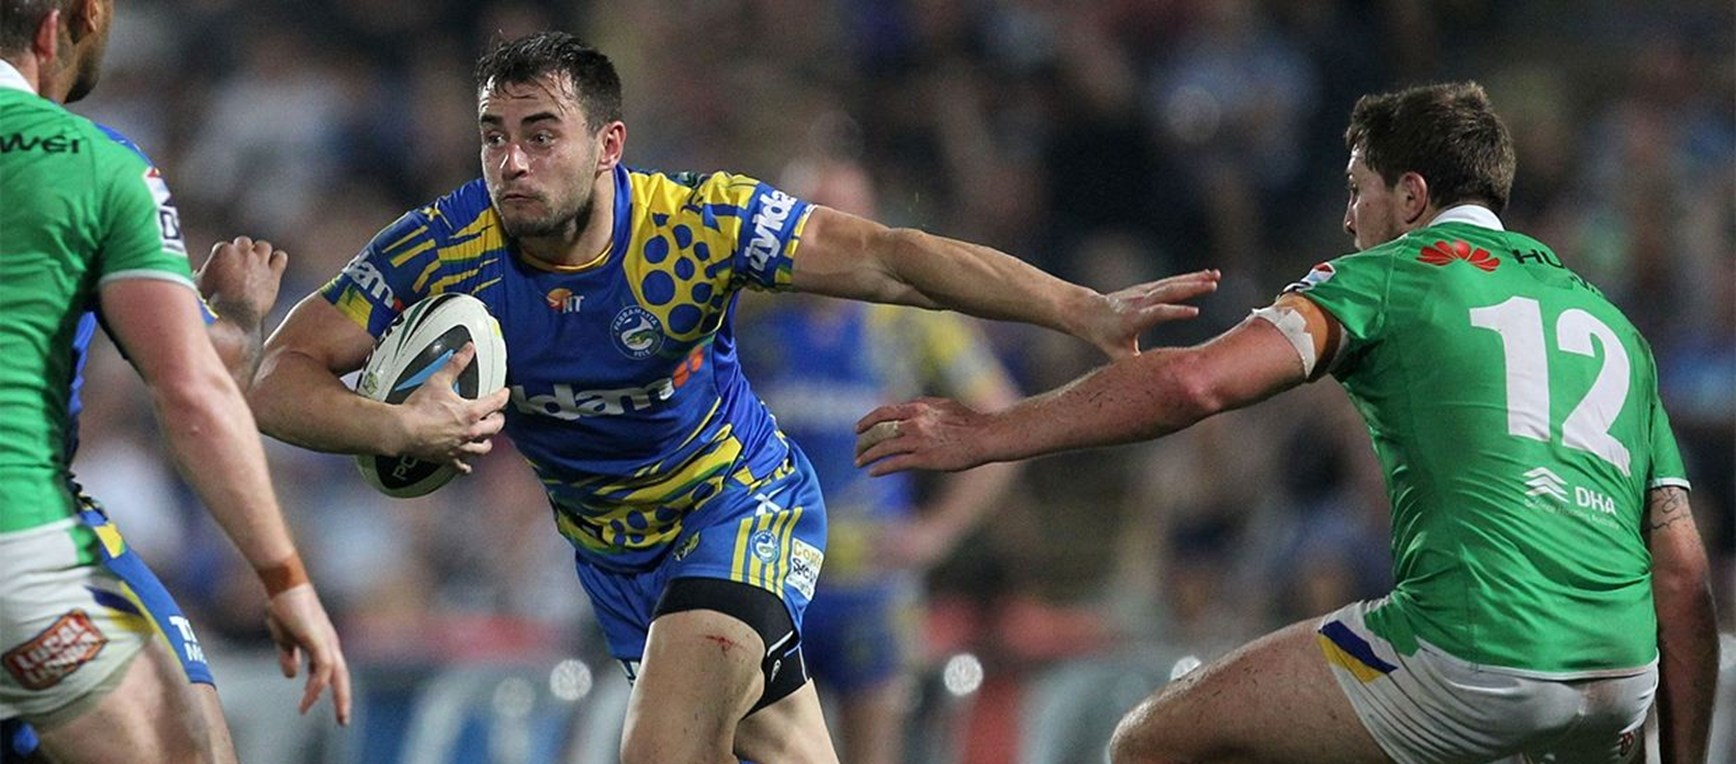 Gallery: Eels v Raiders